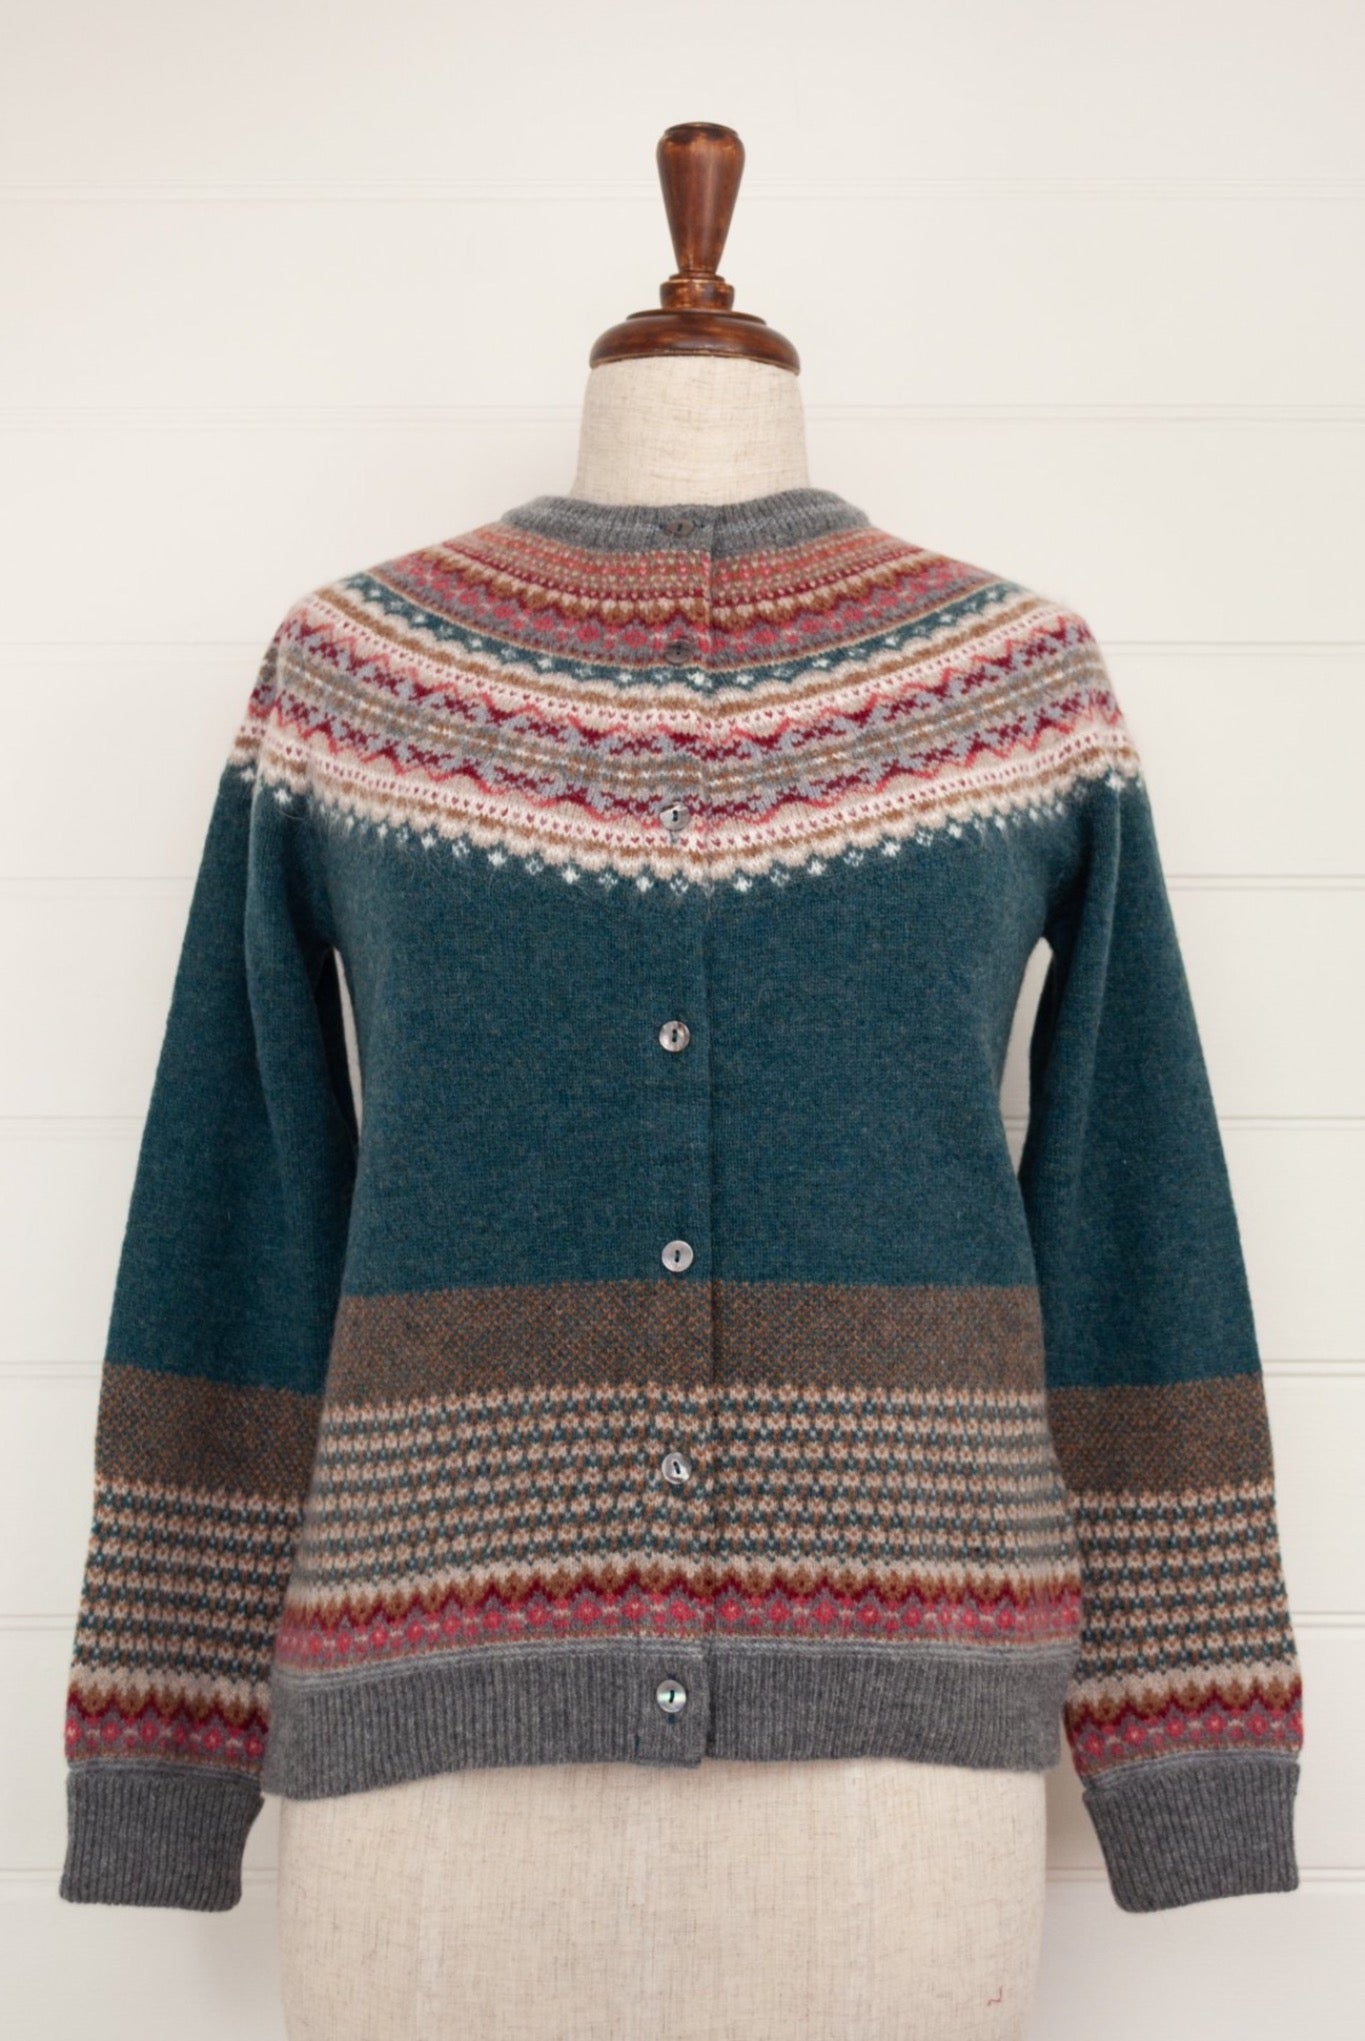 Eribé Alpine cardigan in Lugano, features a rich teal body, with highlights in rust, burgundy, bright pink, ecru and soft blue grey.